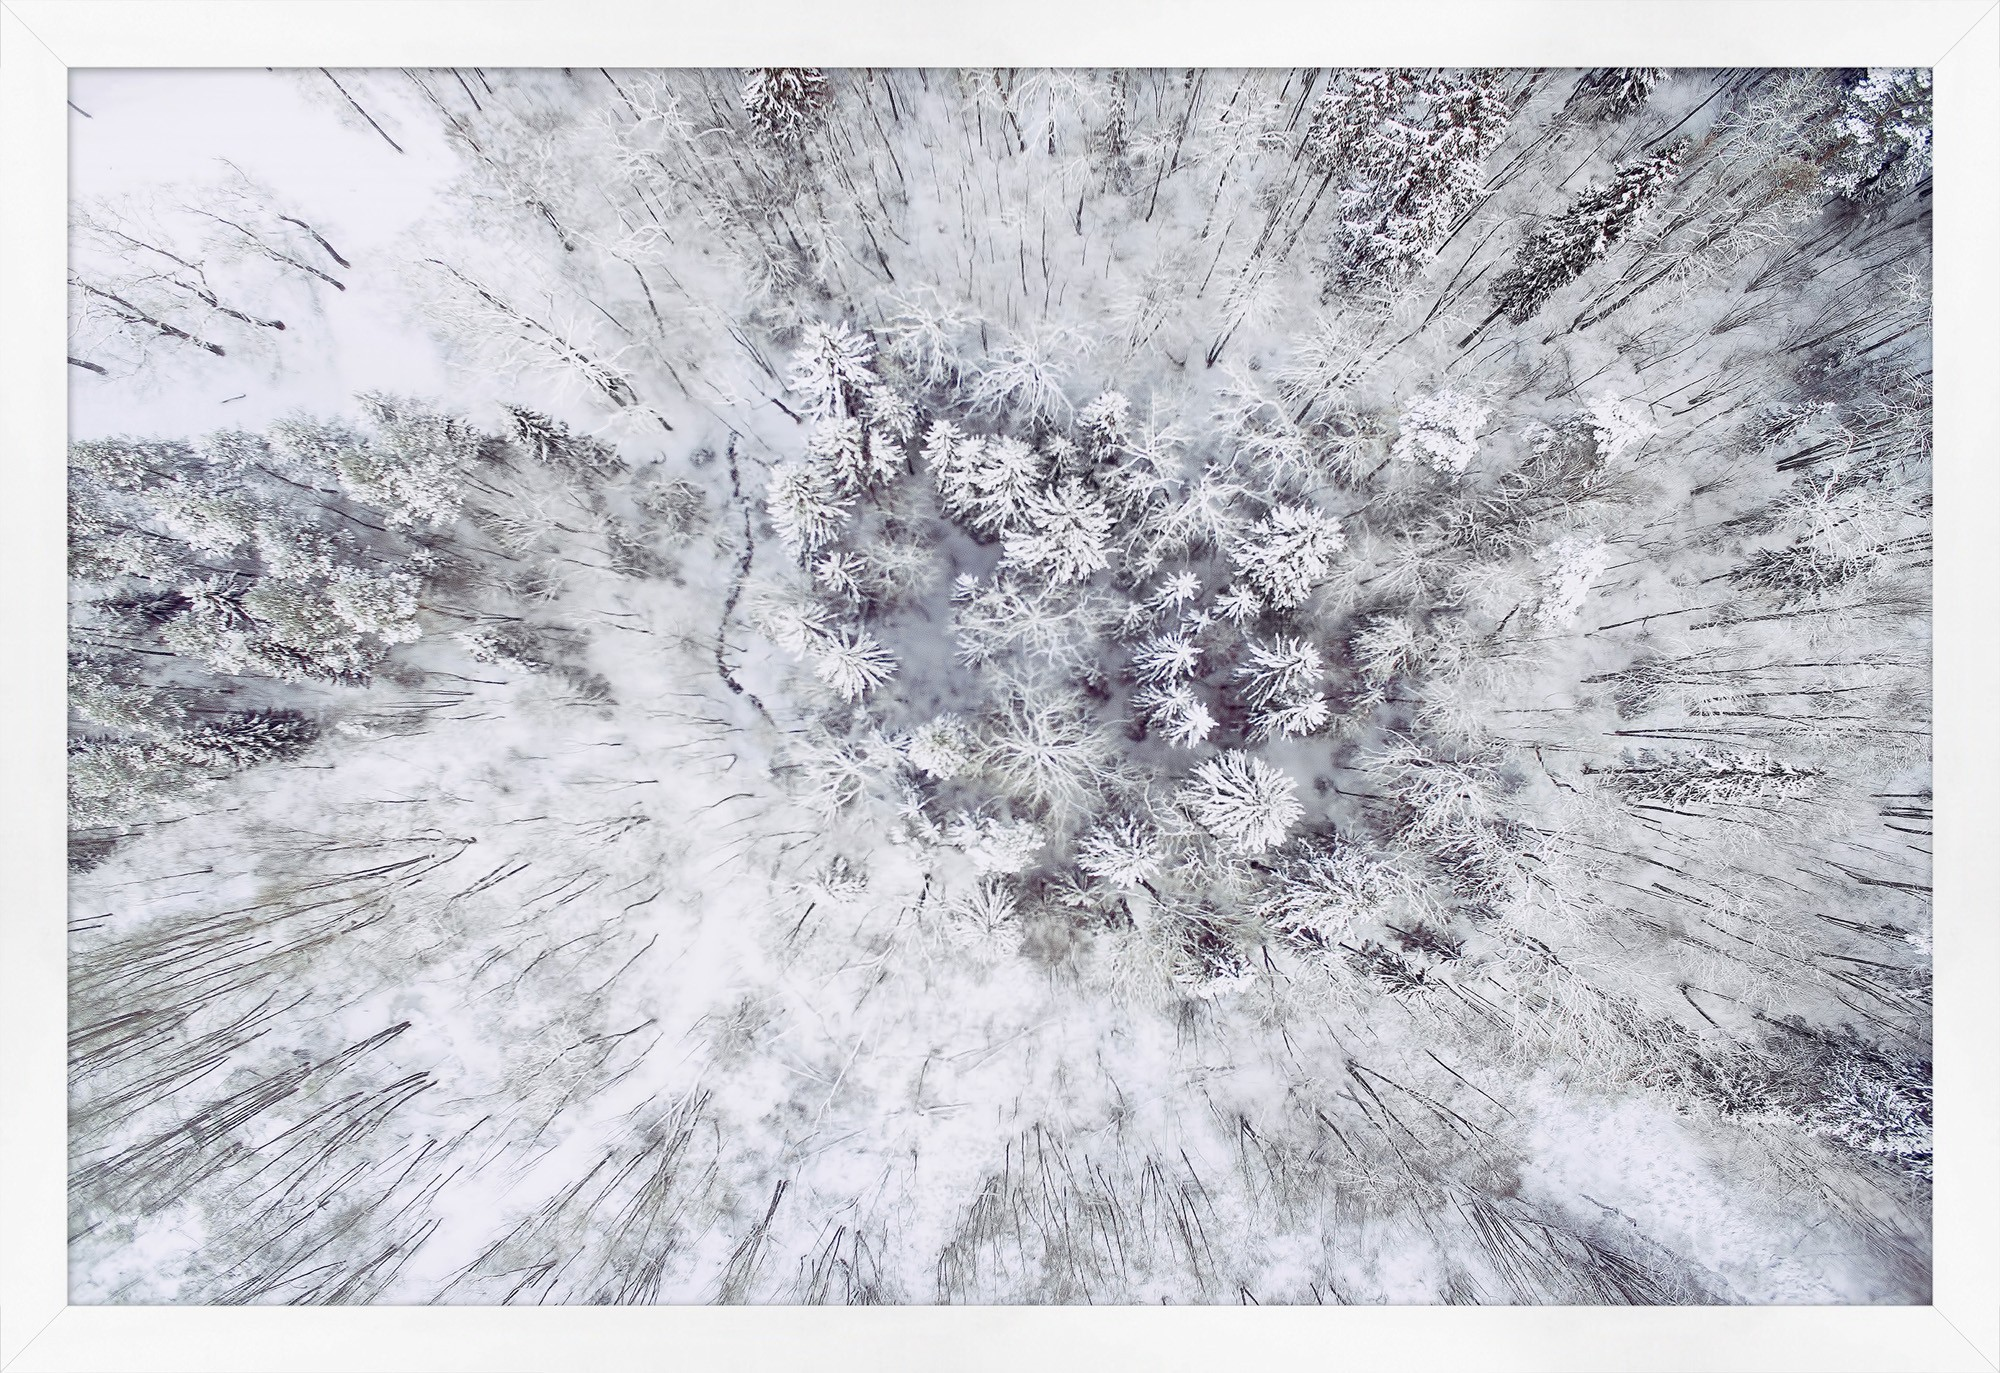 Framed art piece showing an aerial view of winter forest